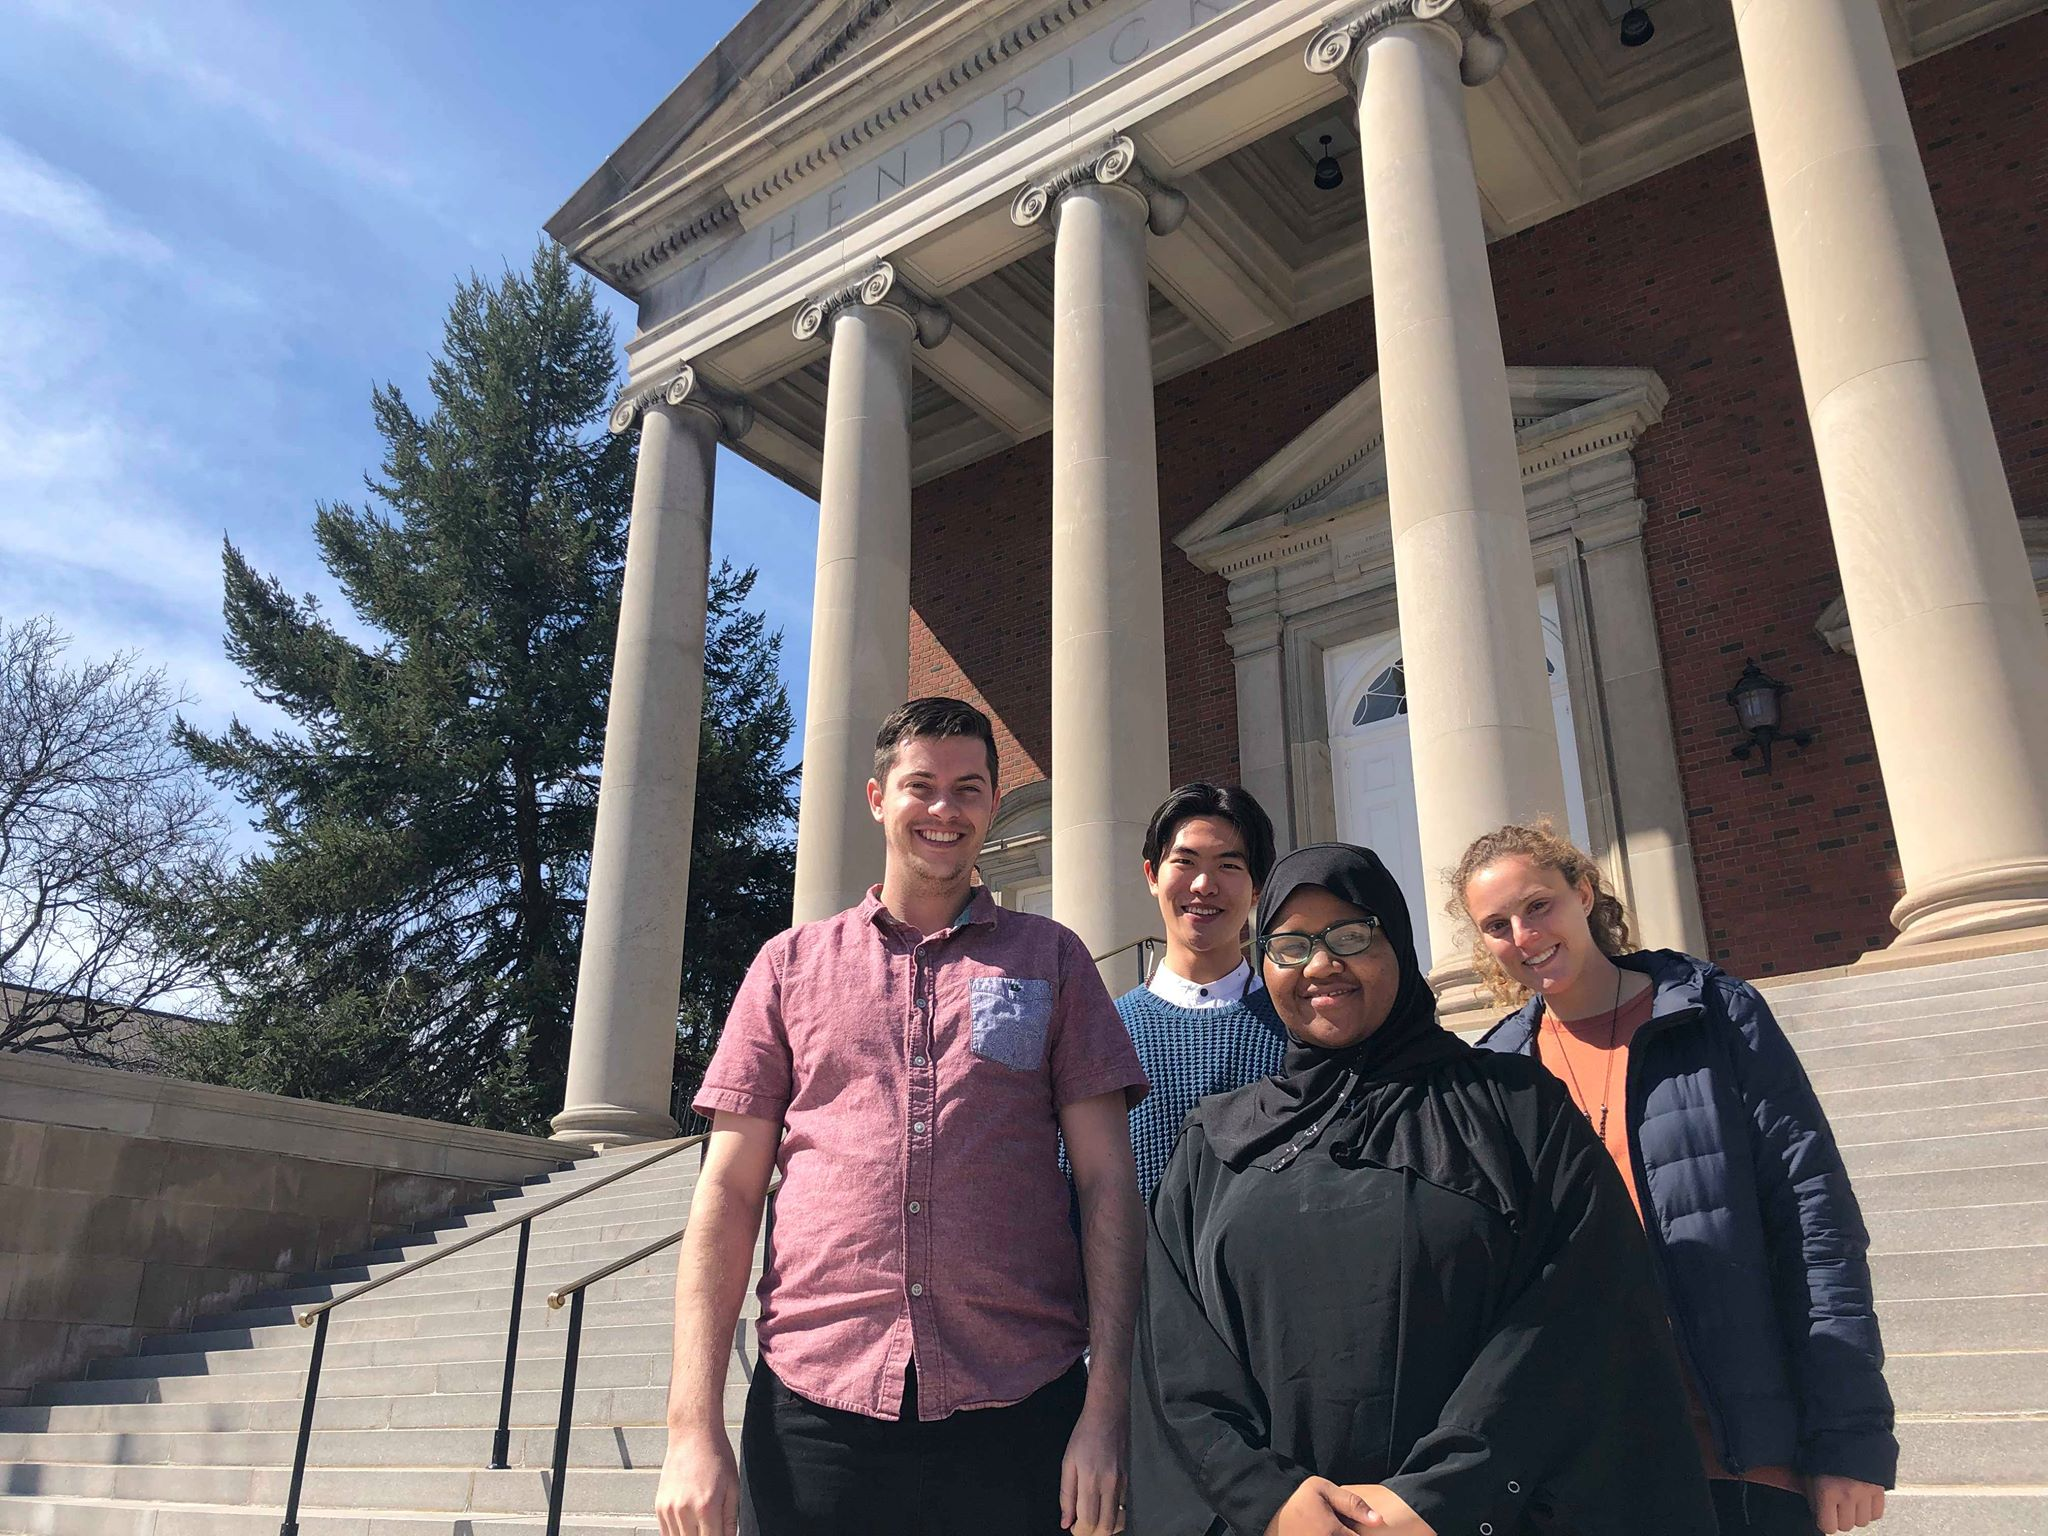 Four members of the Student Assembly of Interfaith Leaders, Dallin Evans, Junjie Ren, Dahabo Farah, and Haley Sussman (left to right), stand in front of Hendricks Chapel. Photo Courtesy: Hendricks Chapel